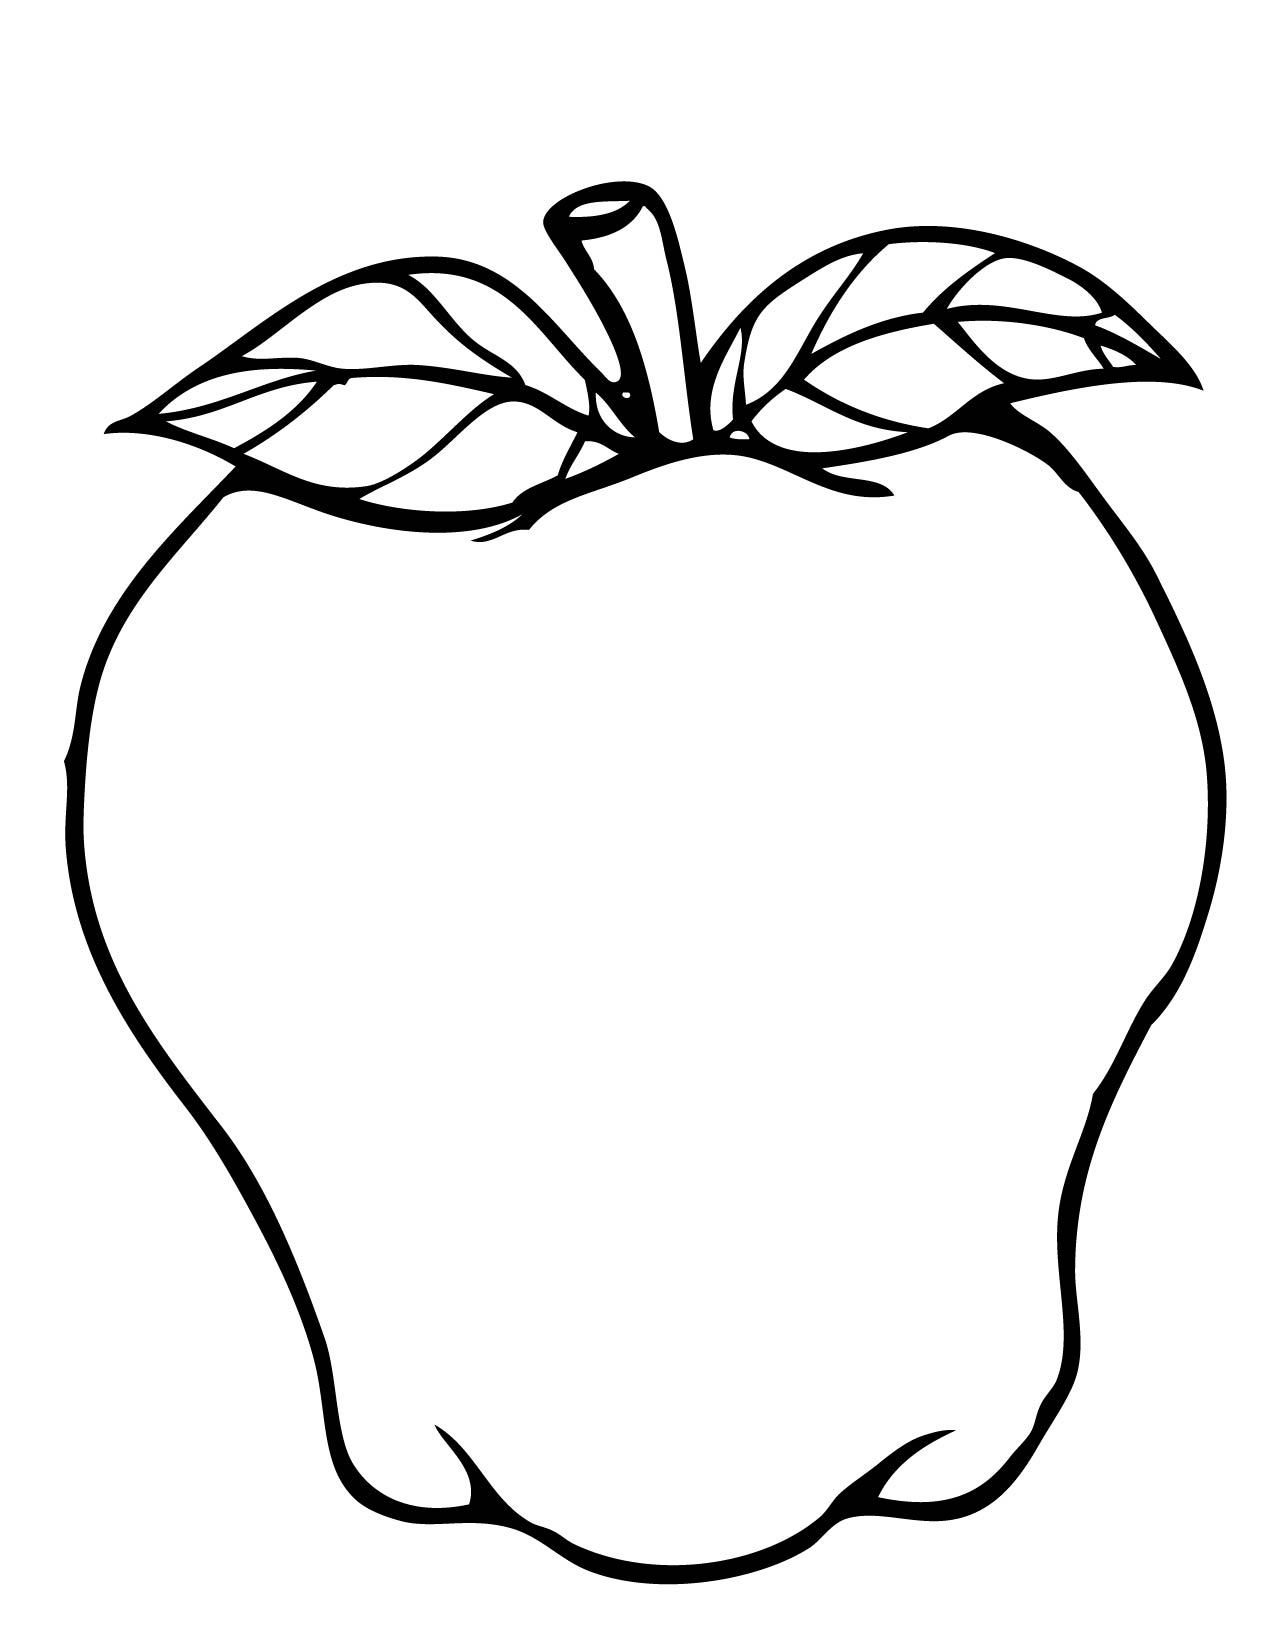 Half Apple Drawing At Getdrawings